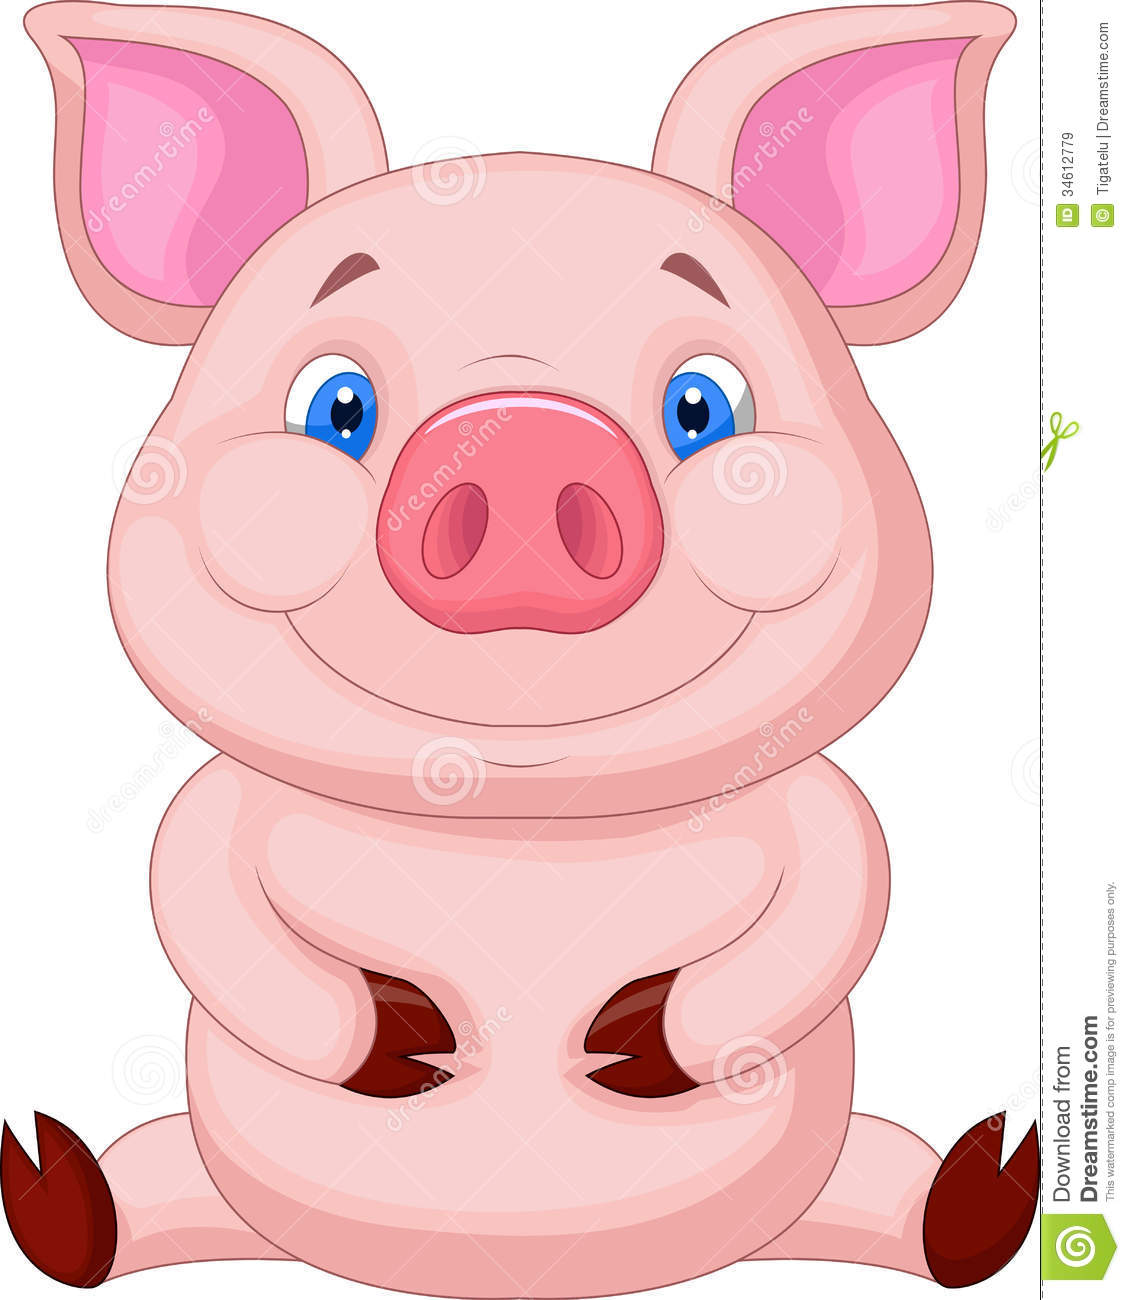 Baby Pig PNG HD - 129643